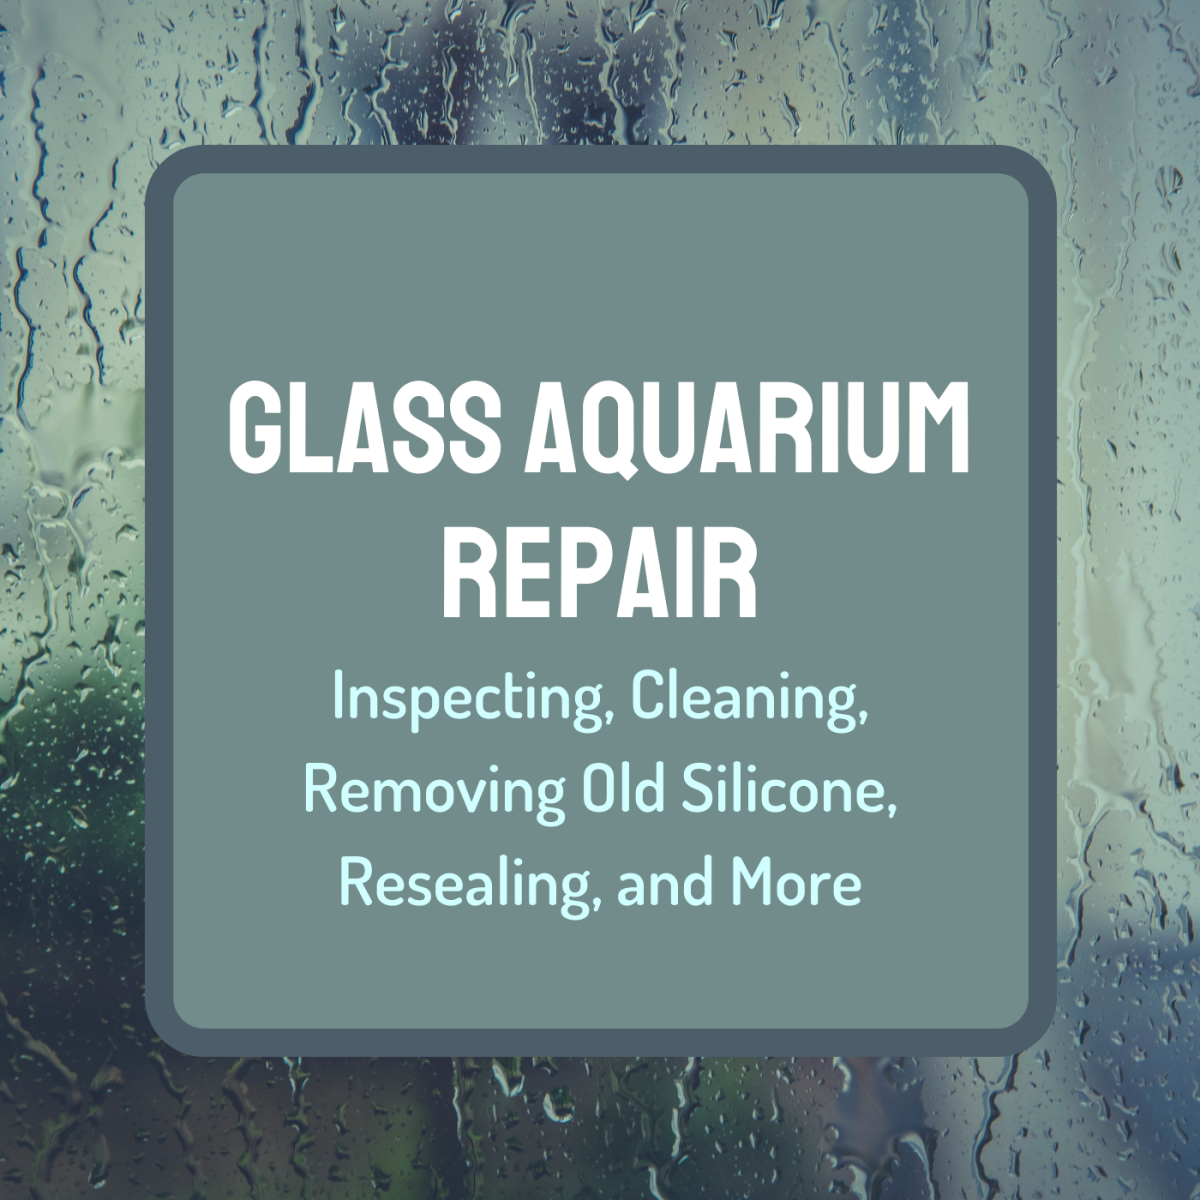 Learn how to refurbish old all-glass aquariums and make them as good as new.